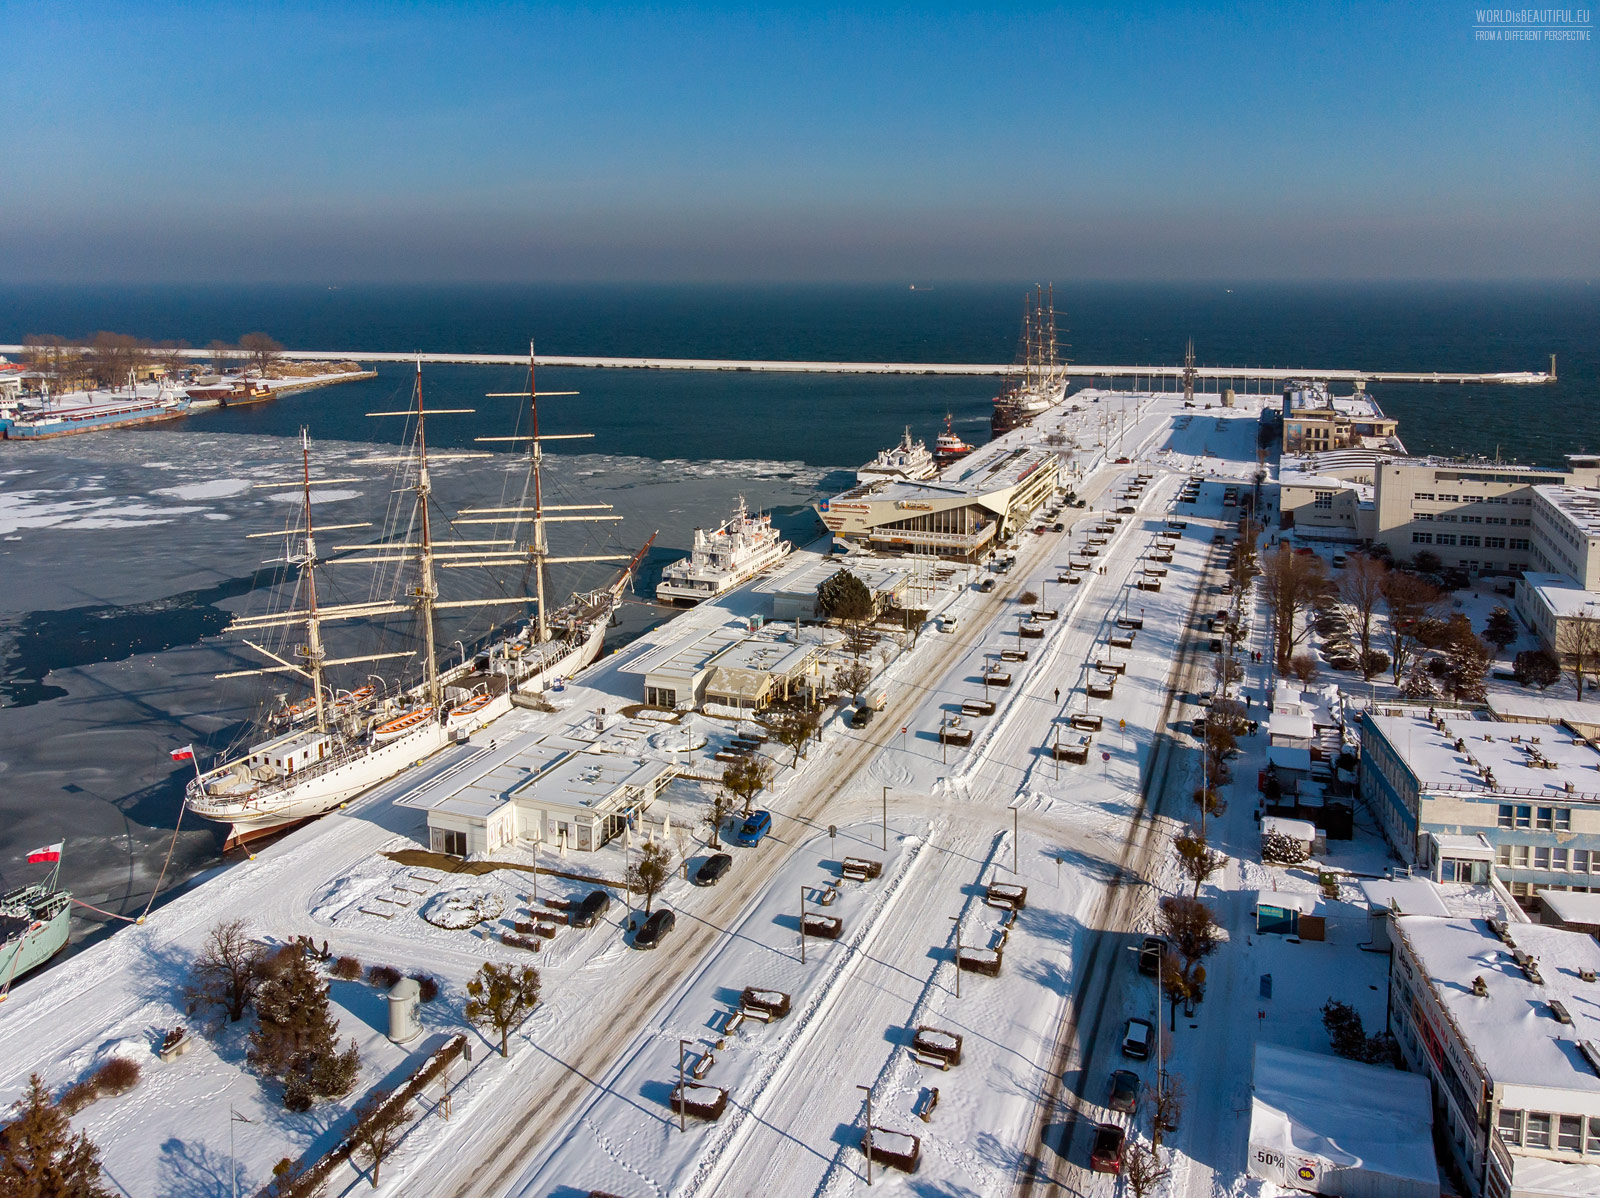 Gdynia's winter picture